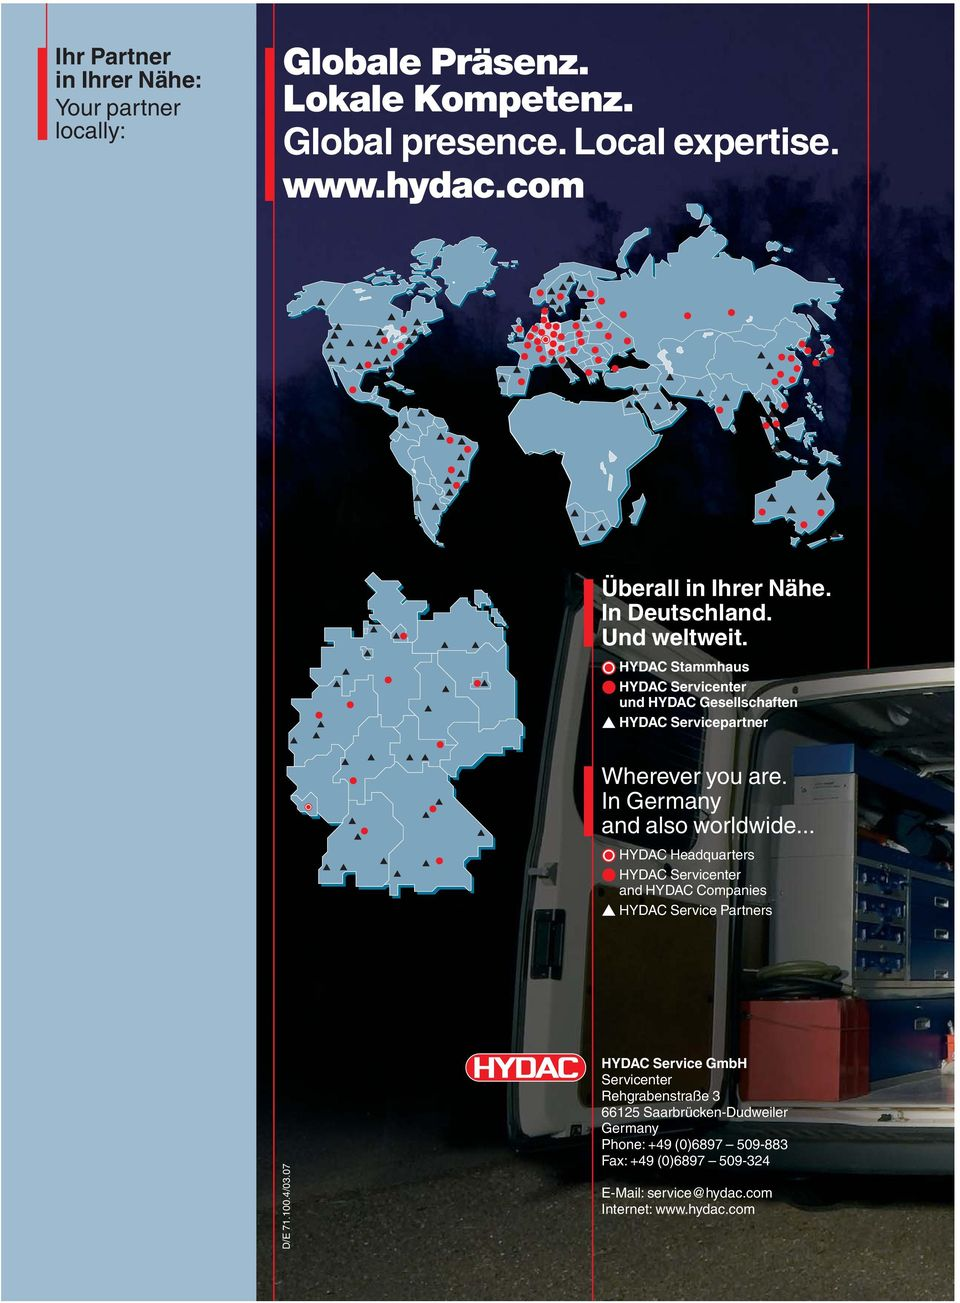 HYDAC Stammhaus HYDAC Servicenter und HYDAC Gesellschaften HYDAC Servicepartner Wherever you are. In Germany and also worldwide.